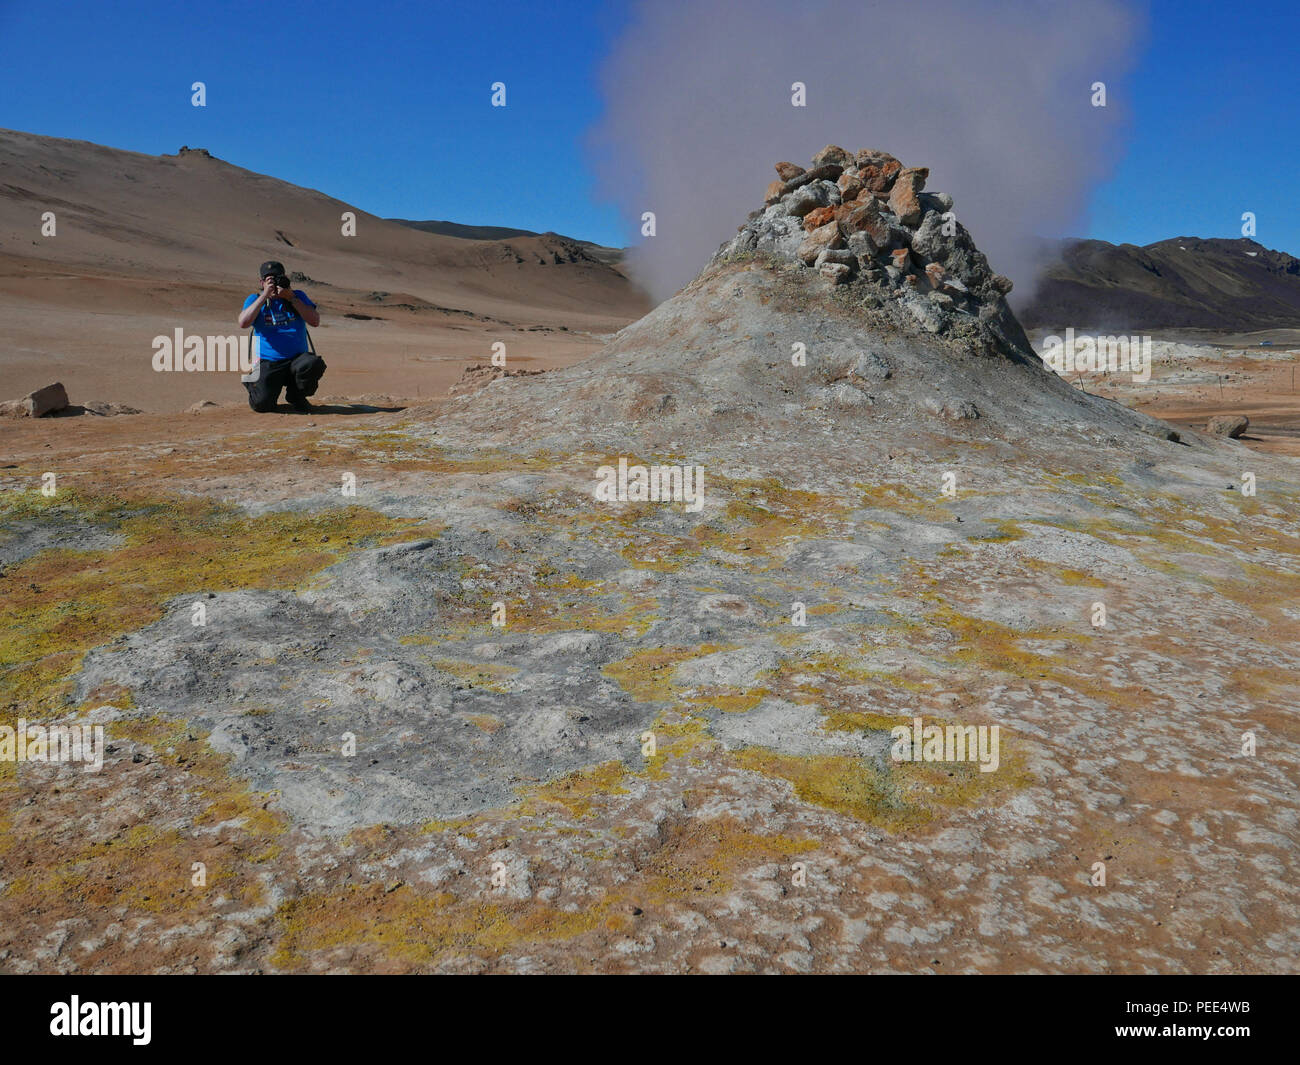 Photographing geothermal steam vents at Hverir, Myvatn, Iceland. - Stock Image